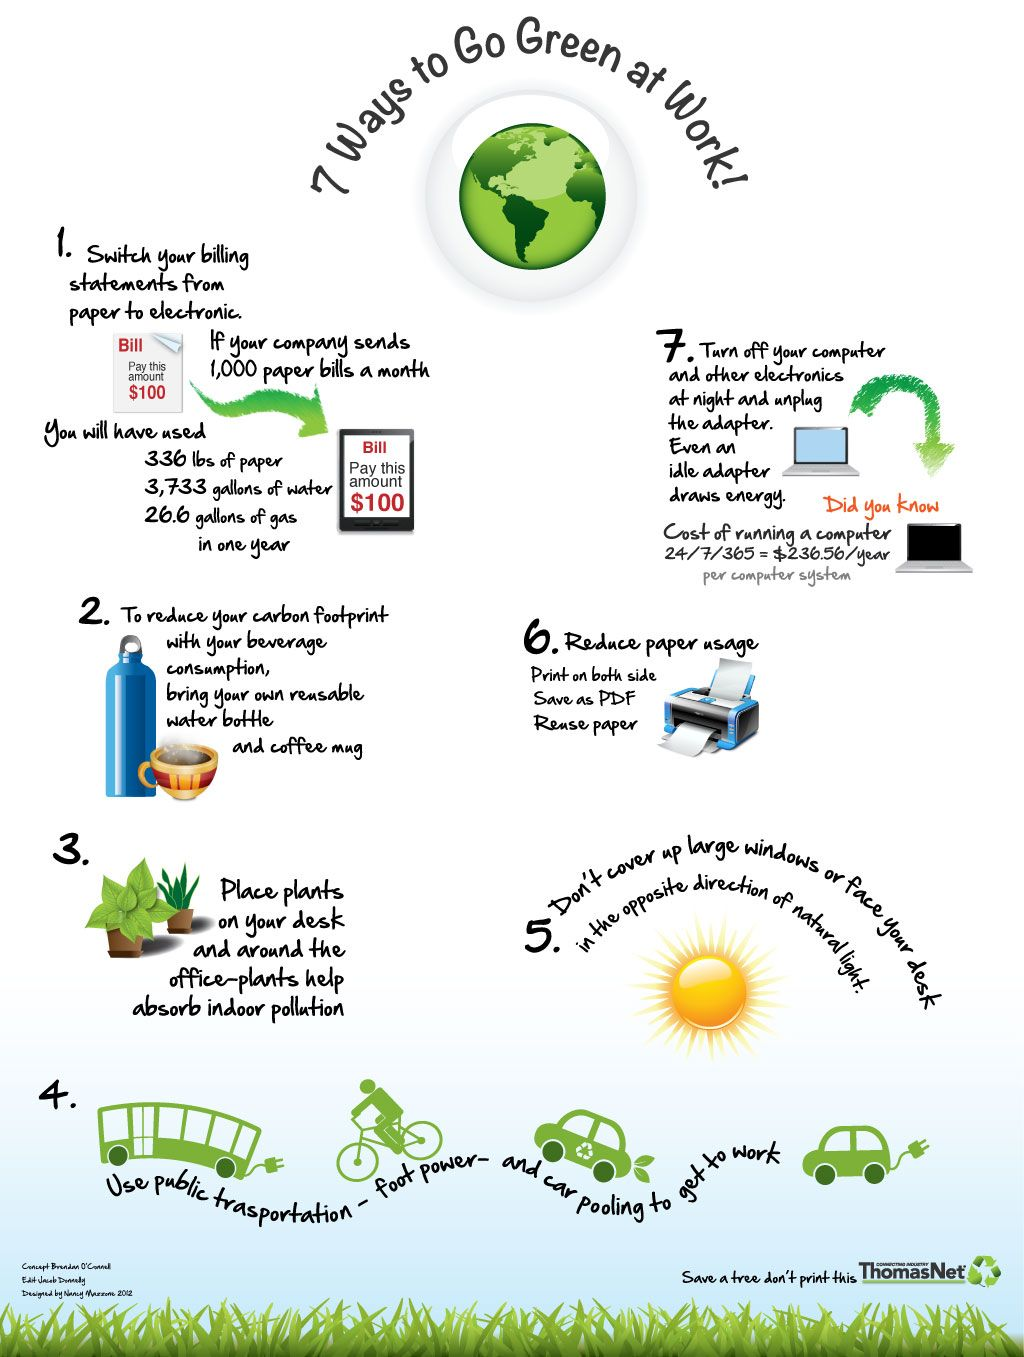 7 Ways to Go Green